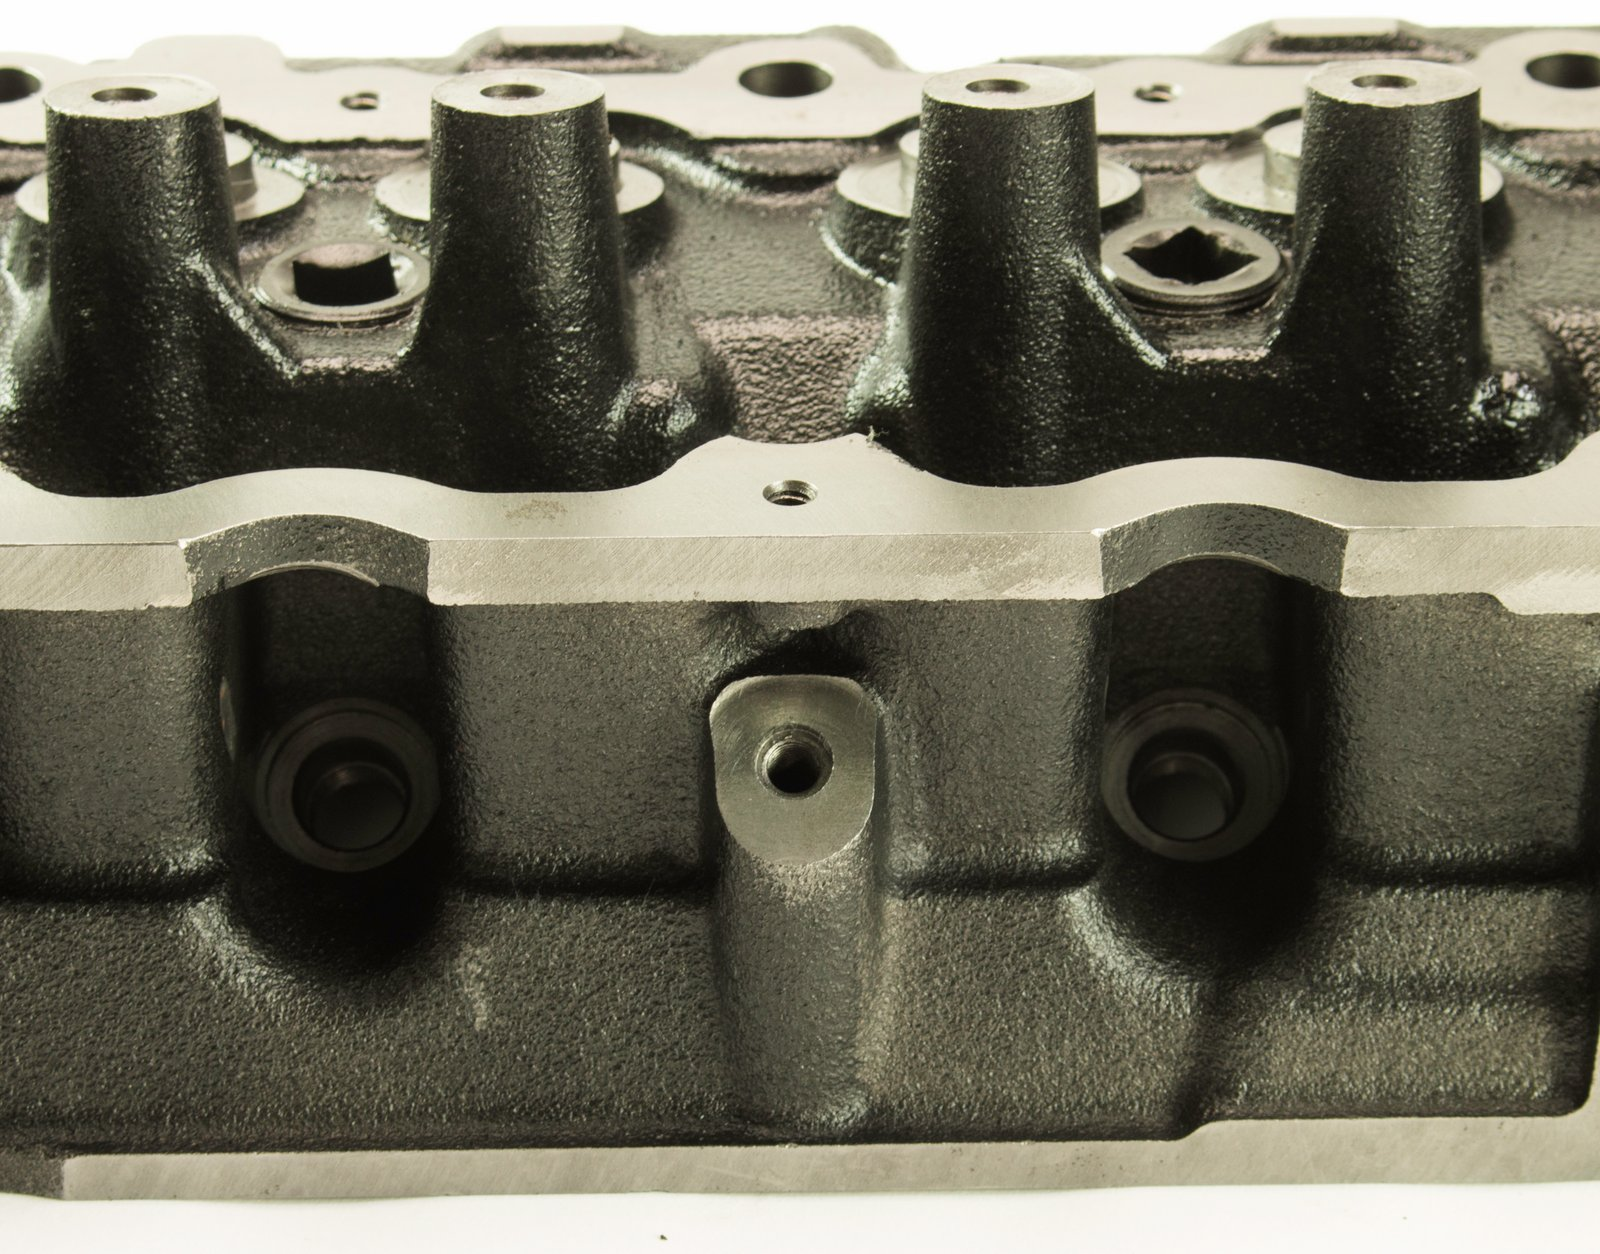 Dragway Tools® 4 0 Bare Cylinder Head for Jeep 0331 7130 No